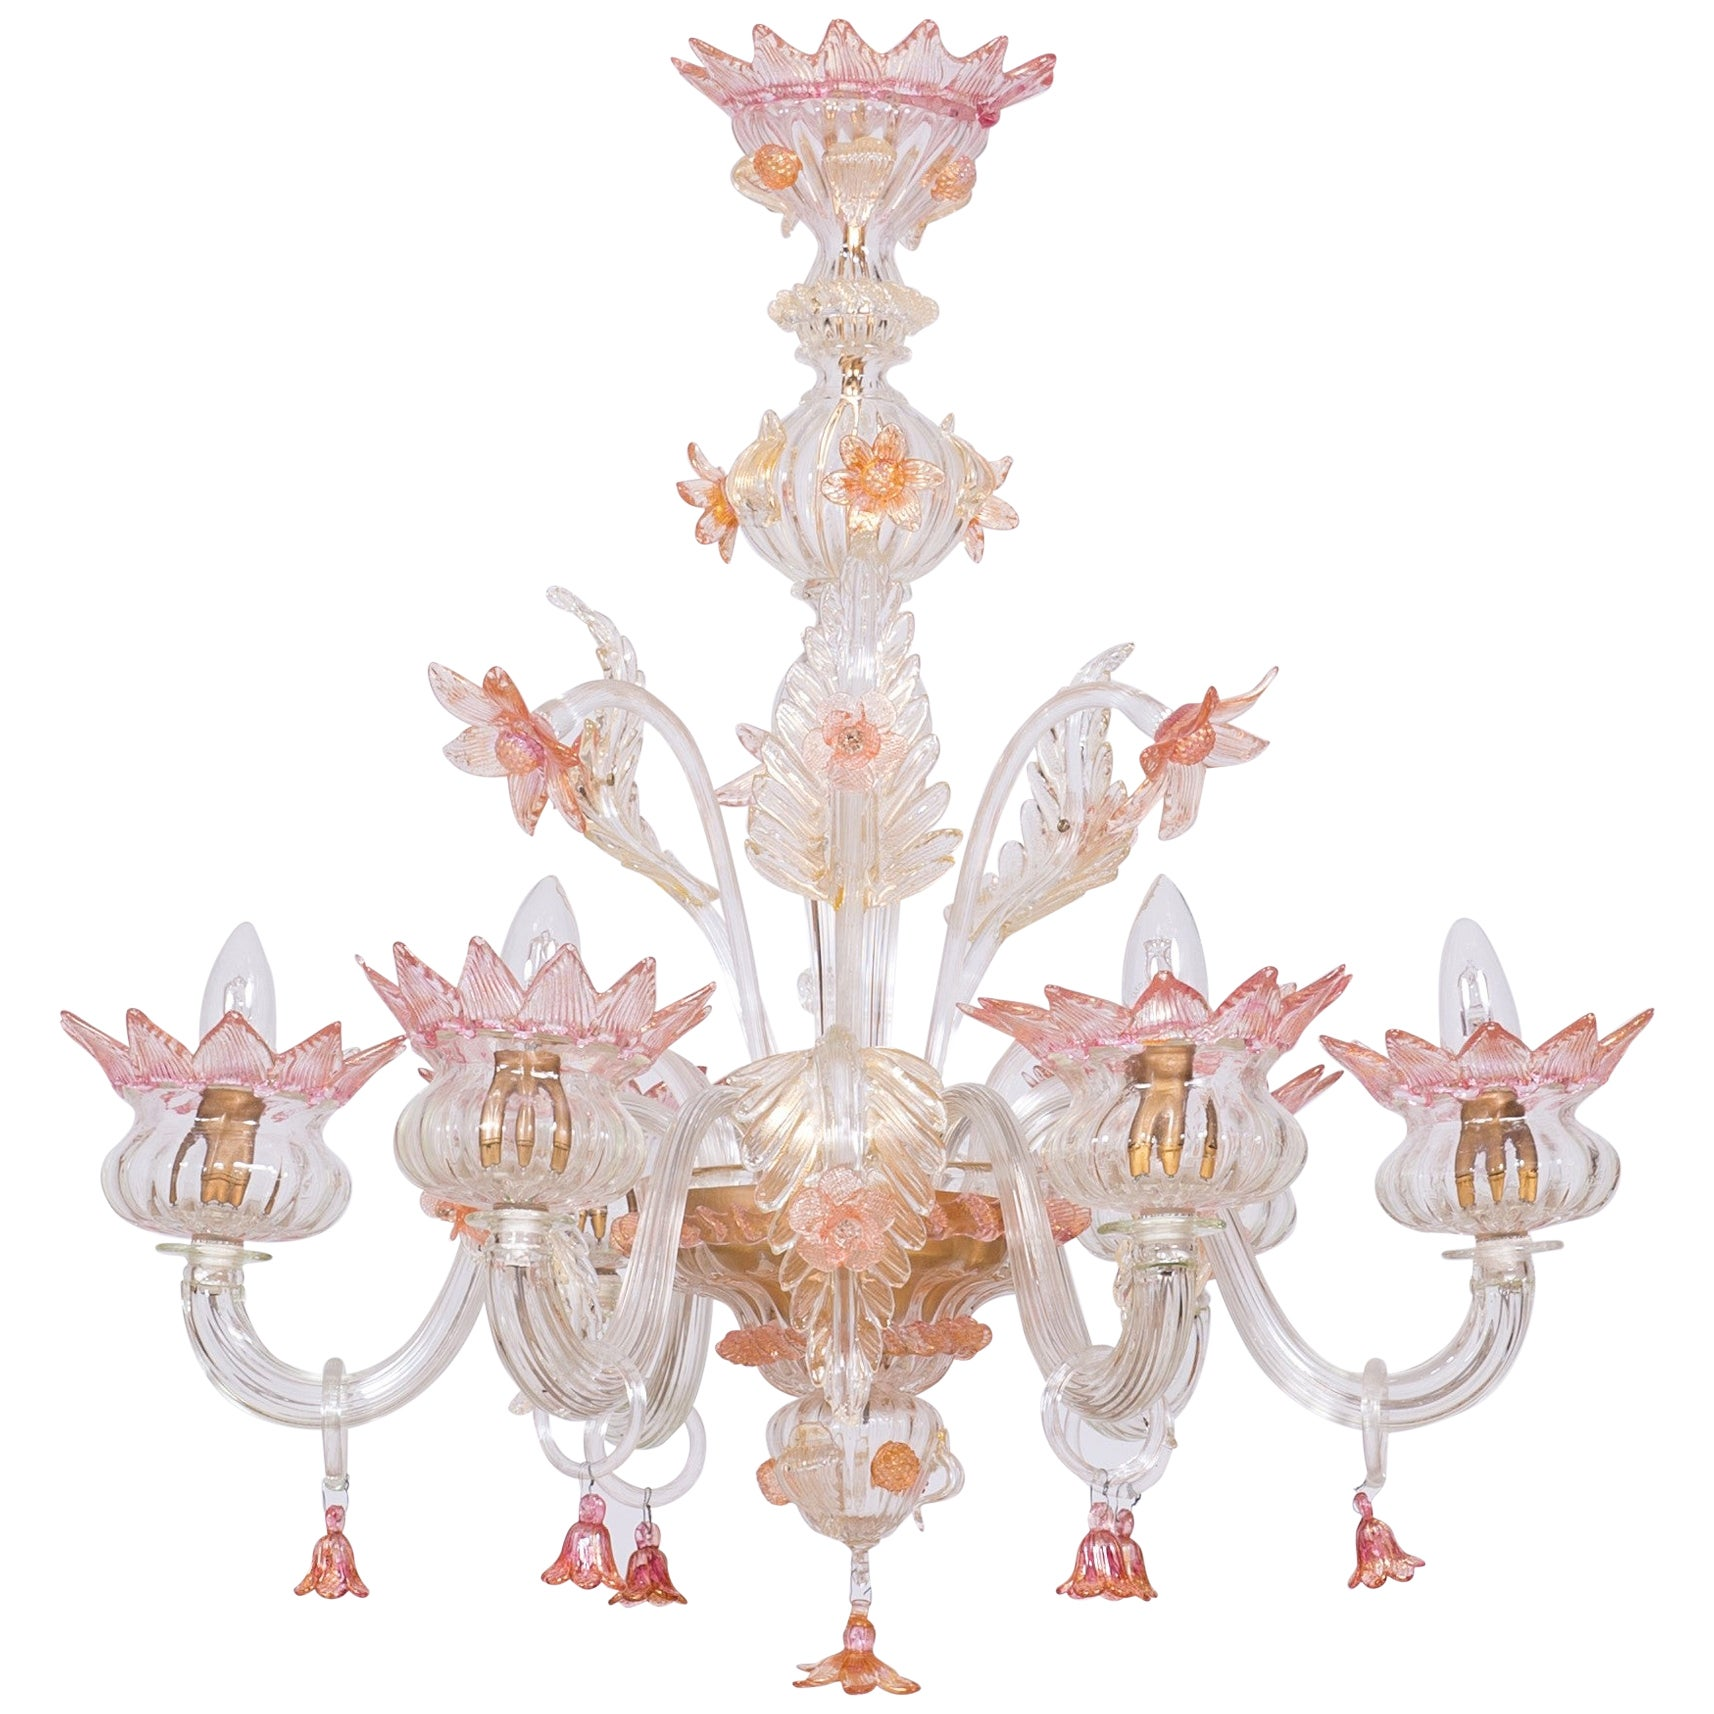 Floral Murano Glass Chandelier Pink and Gold Vintage Murano Gallery, Italy